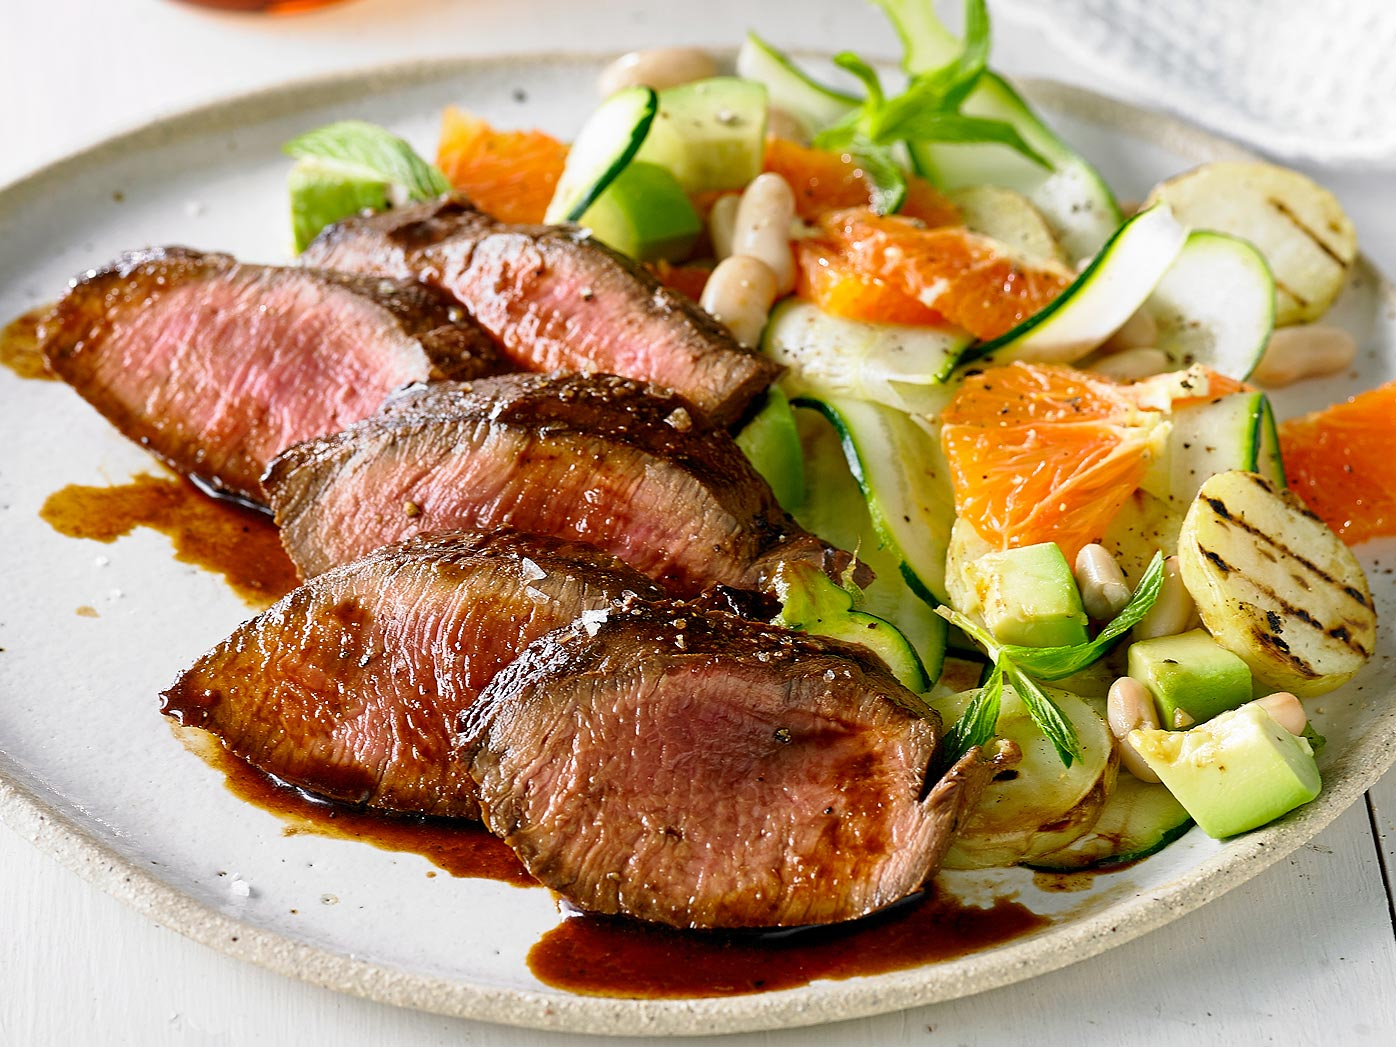 Peruvian-style flank steak with salad